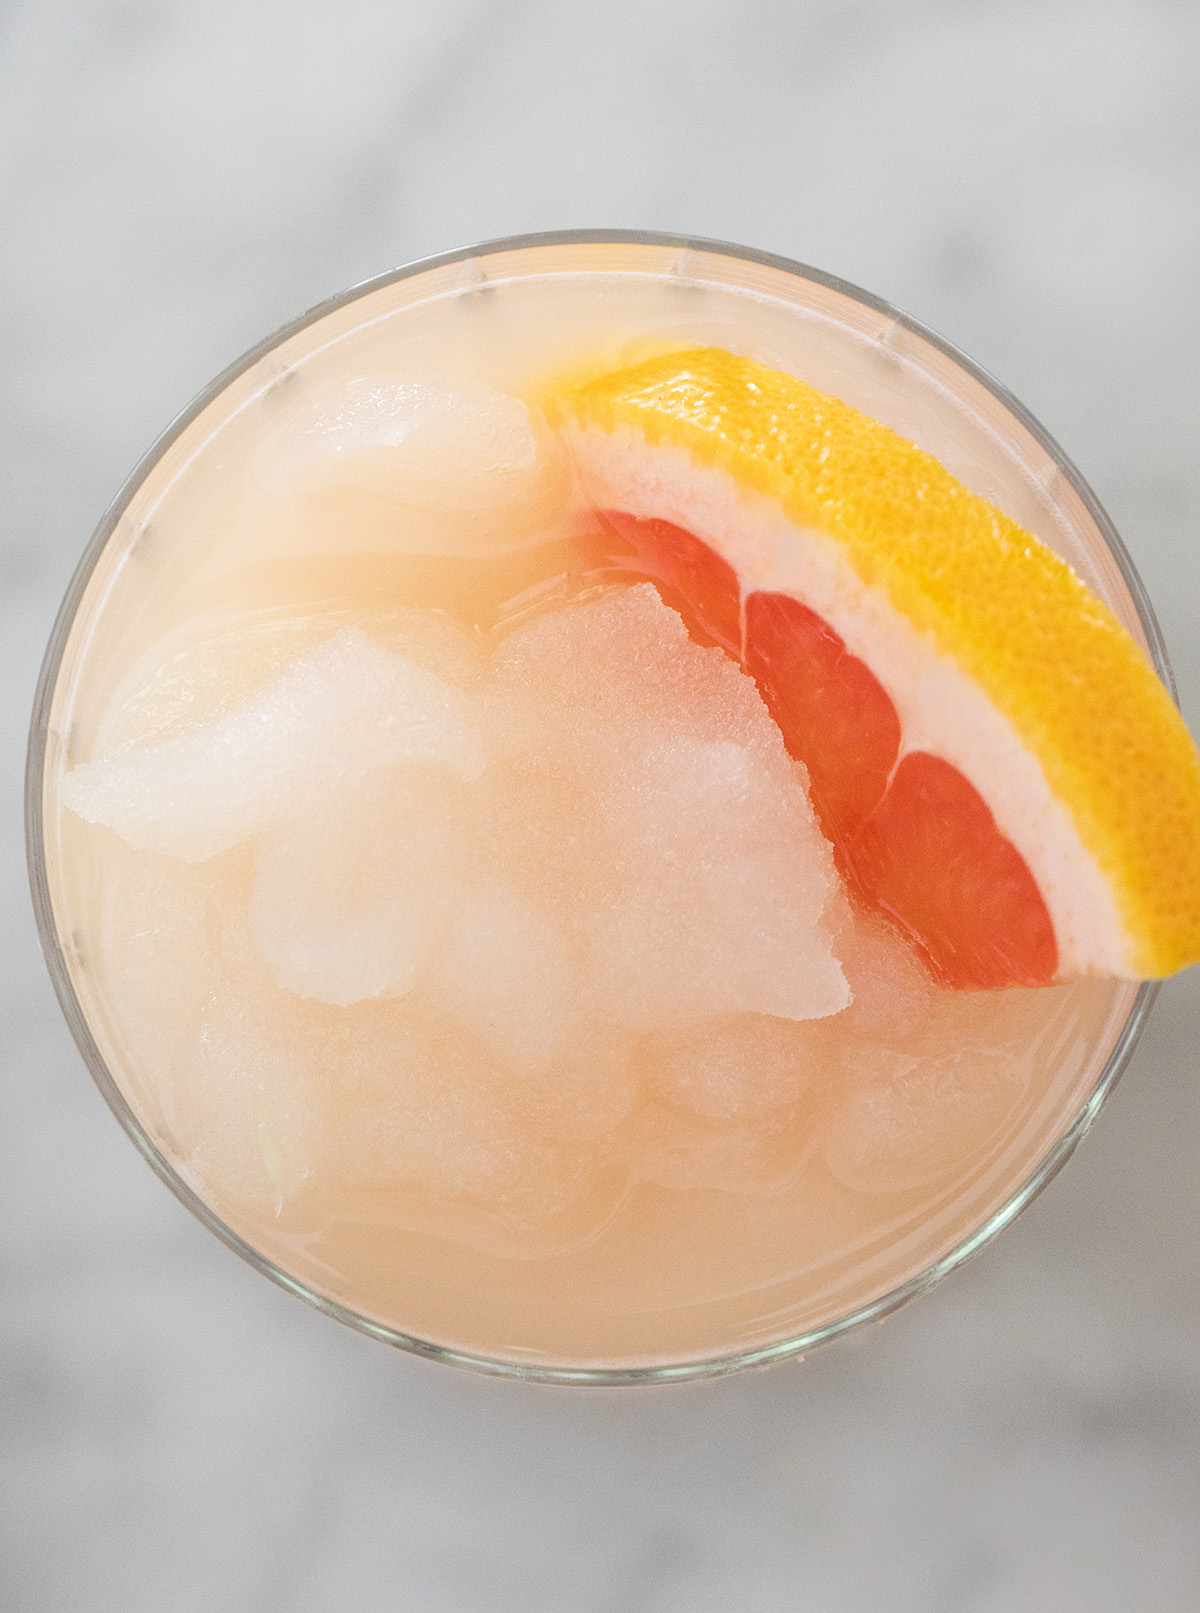 Frozen photo of Paloma cocktail from above